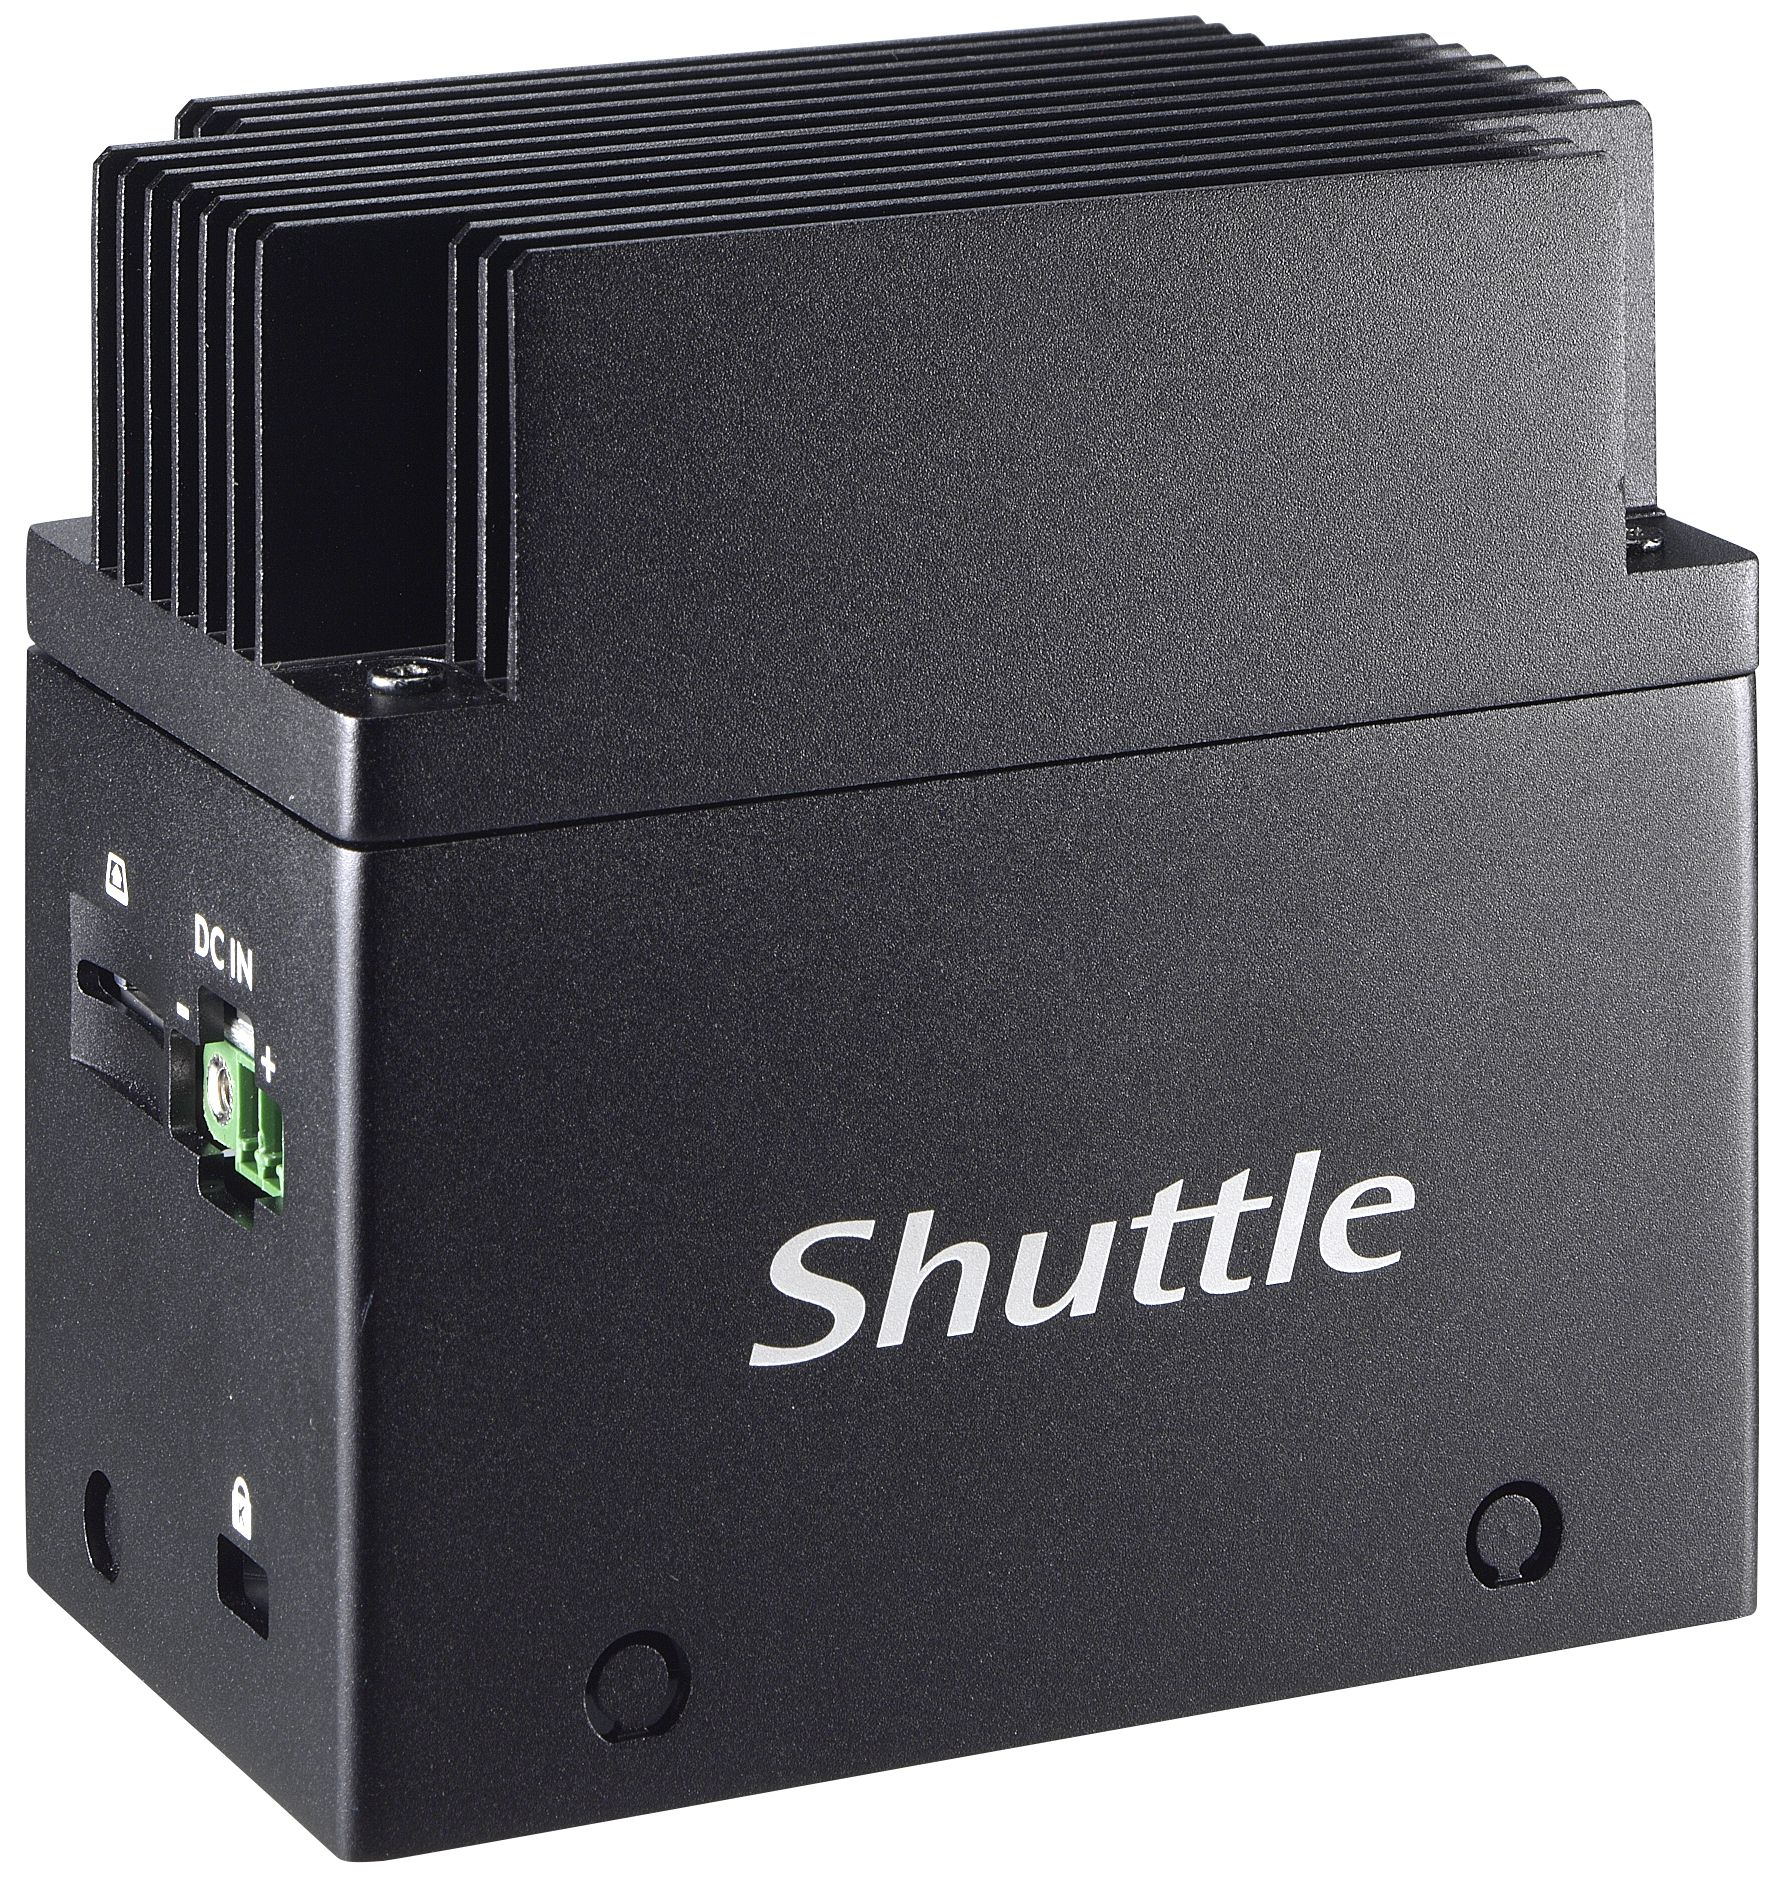 Shuttle EDGE EN01J3 J3355 Intel® Celeron® 4 GB LPDDR4-SDRAM 64 GB eMMC Mini PC Black